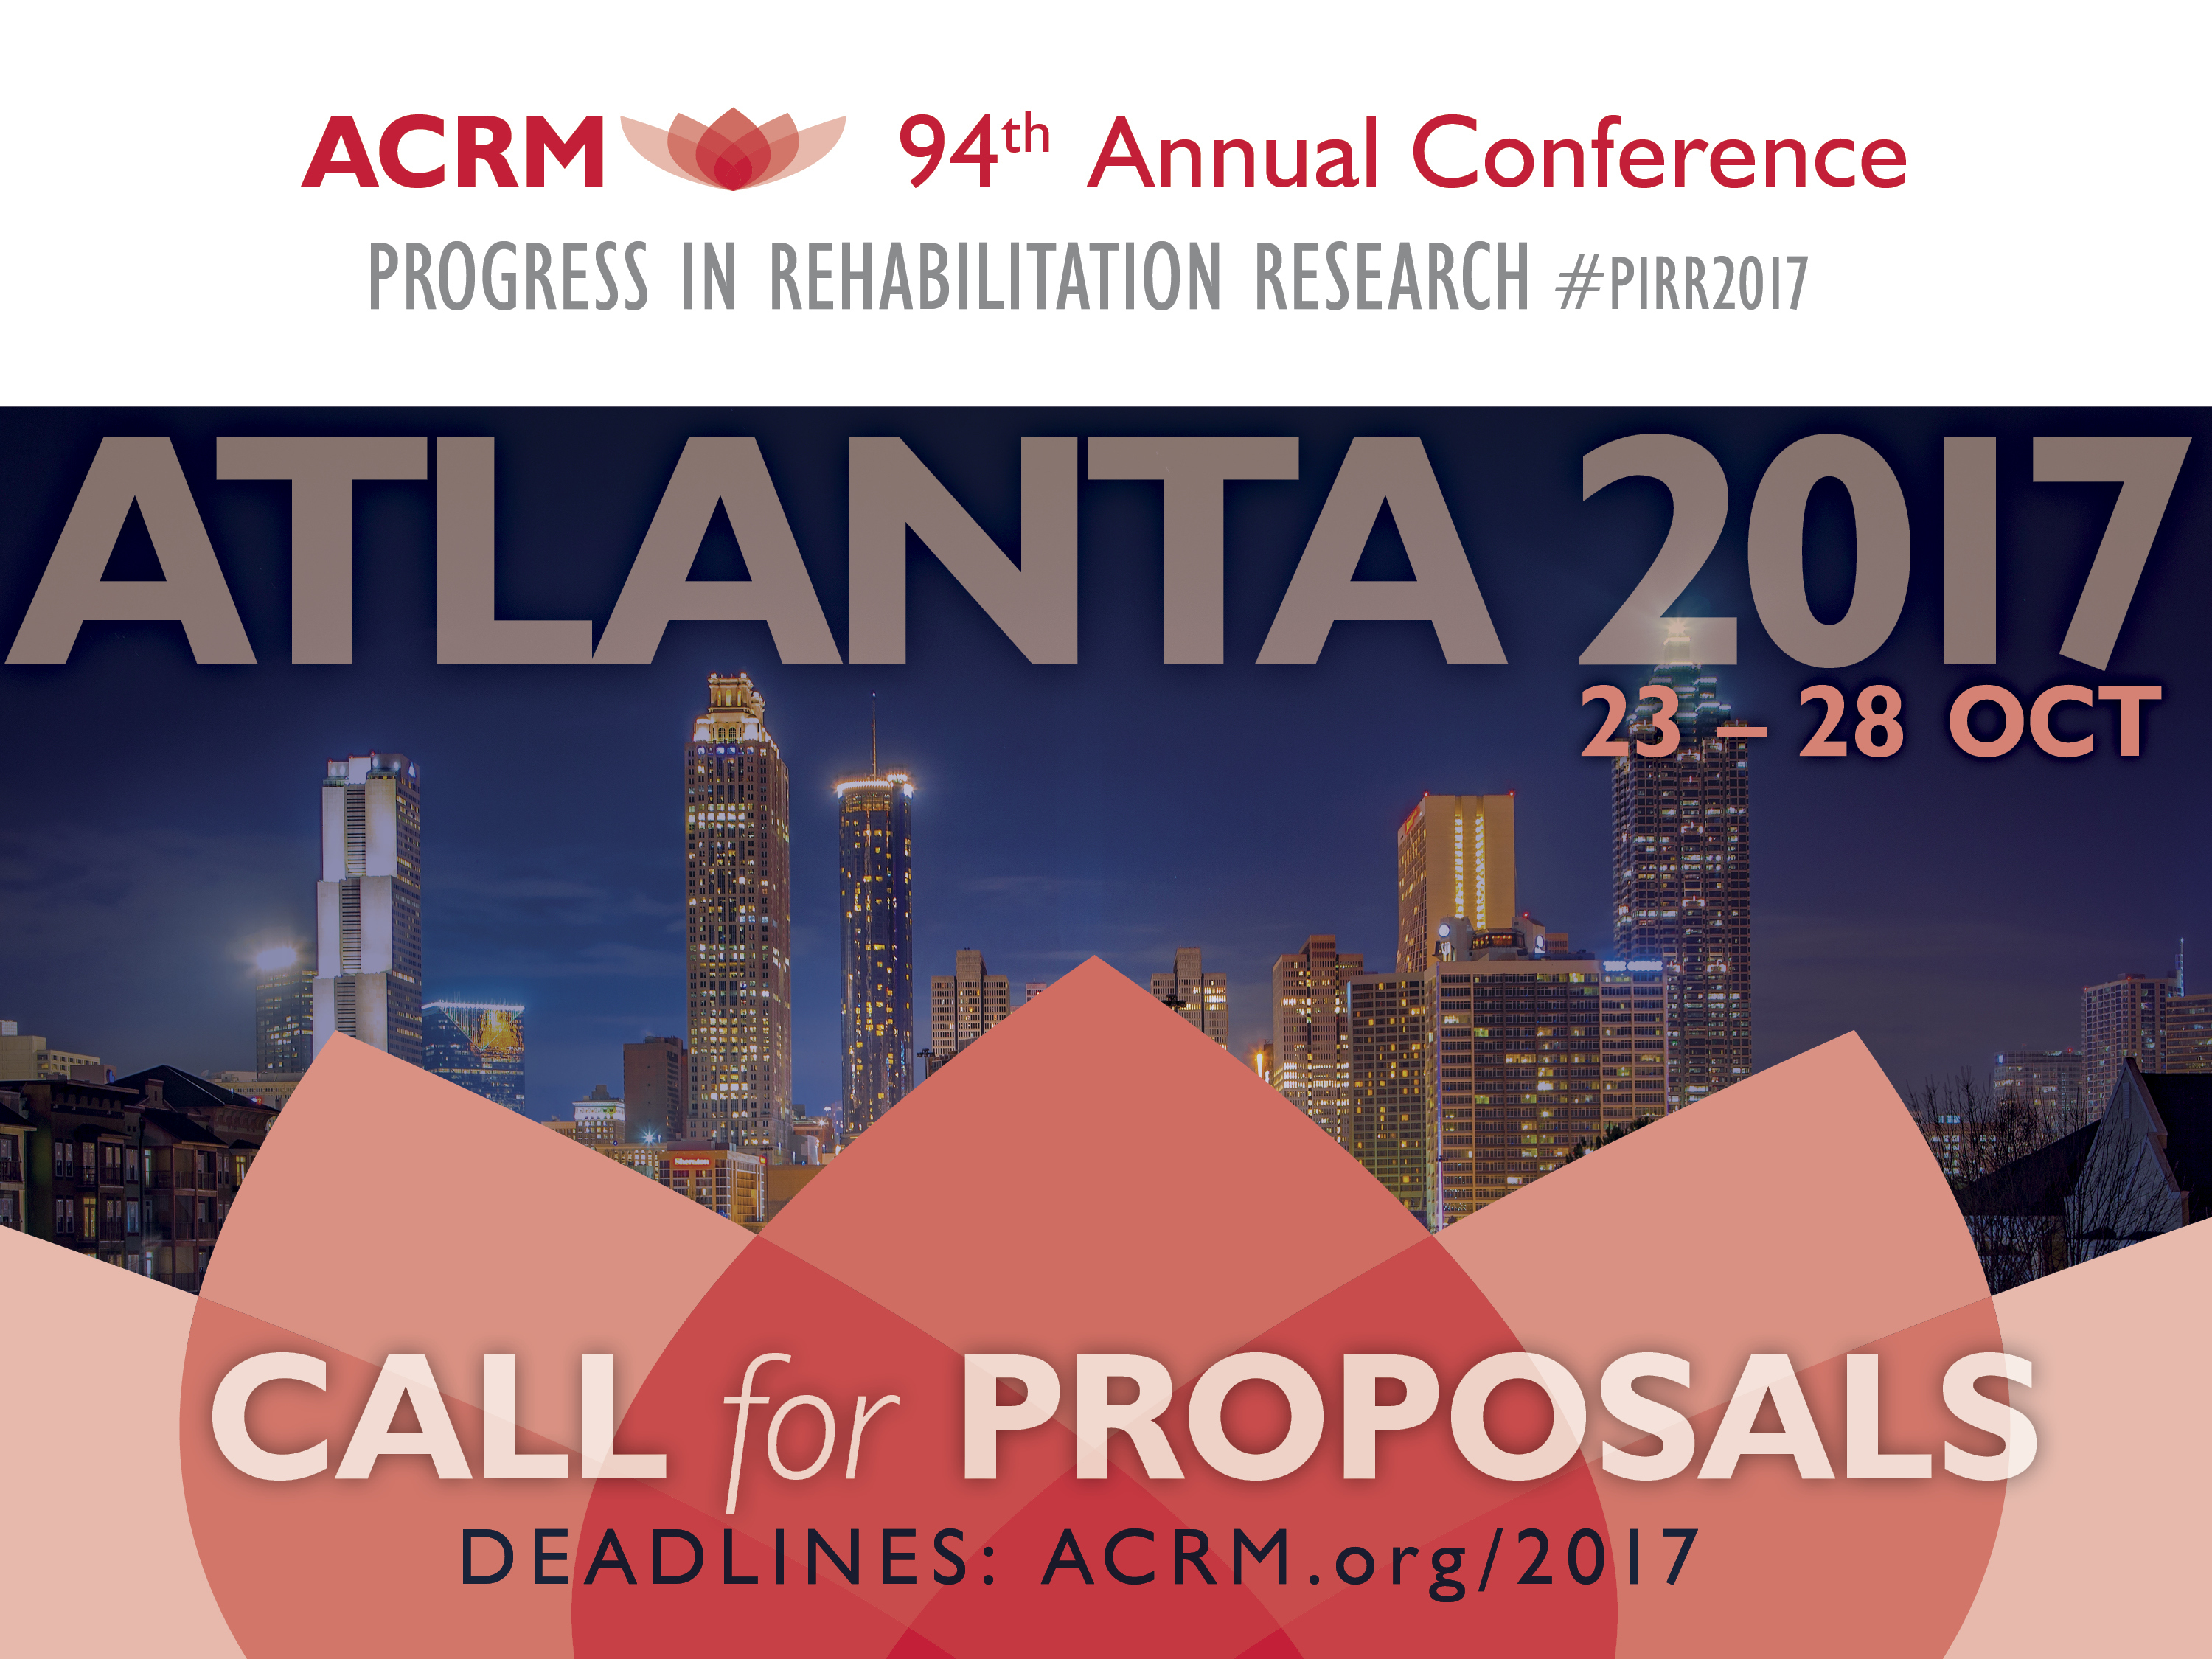 ACRM Annual Conference Call for Proposals PPT Slide Art